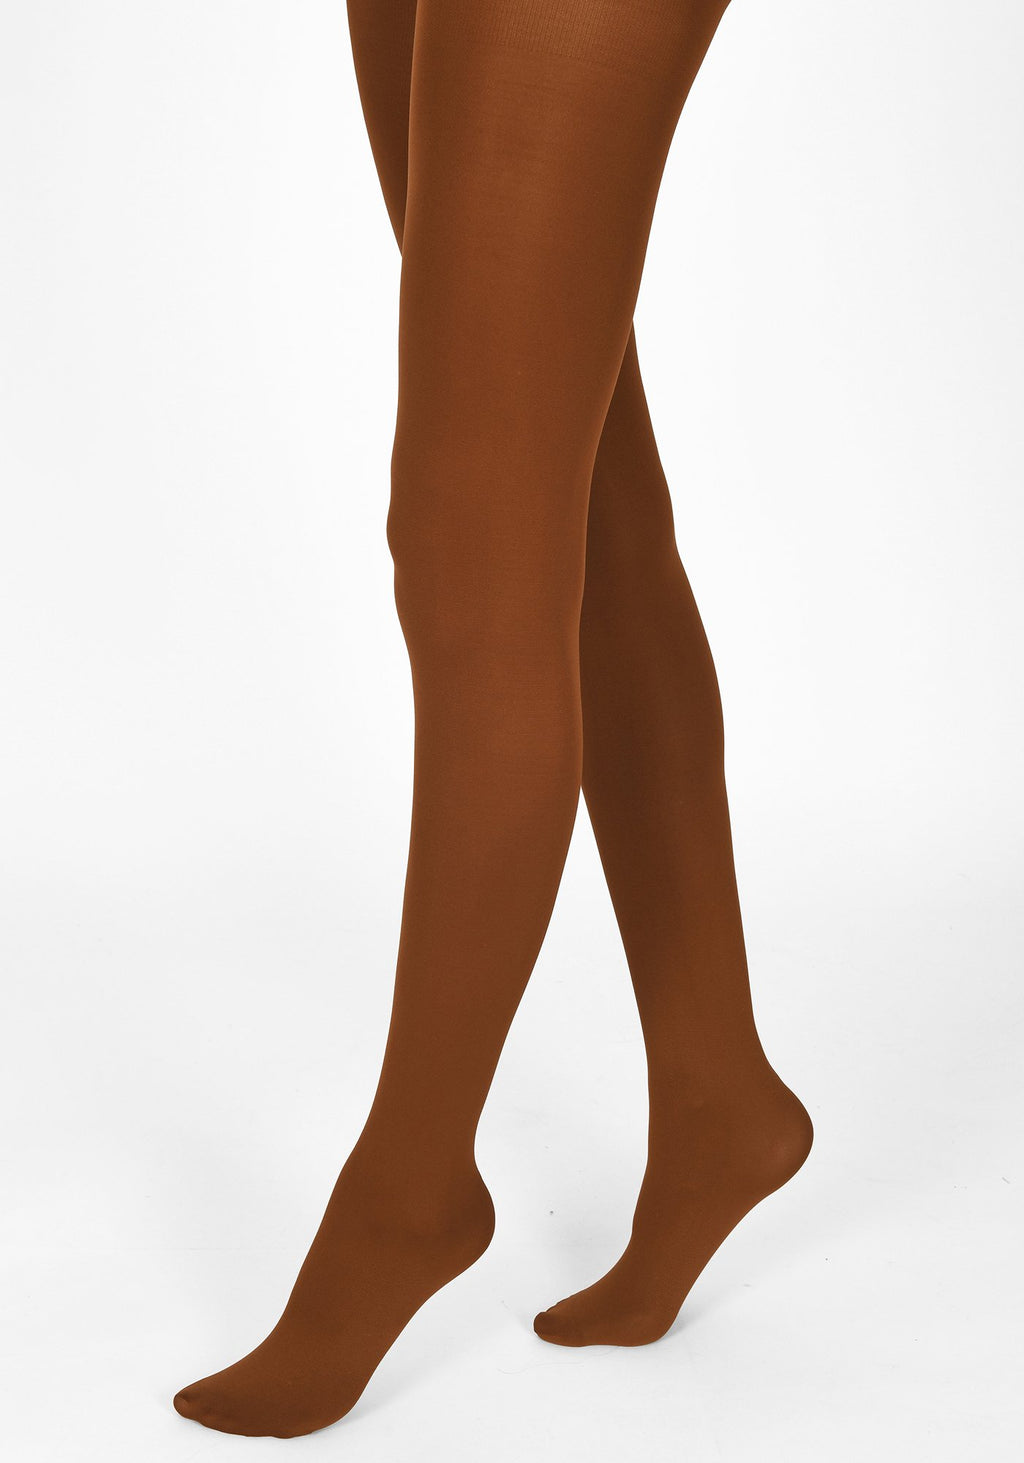 cinnamon tights 100 denier 1